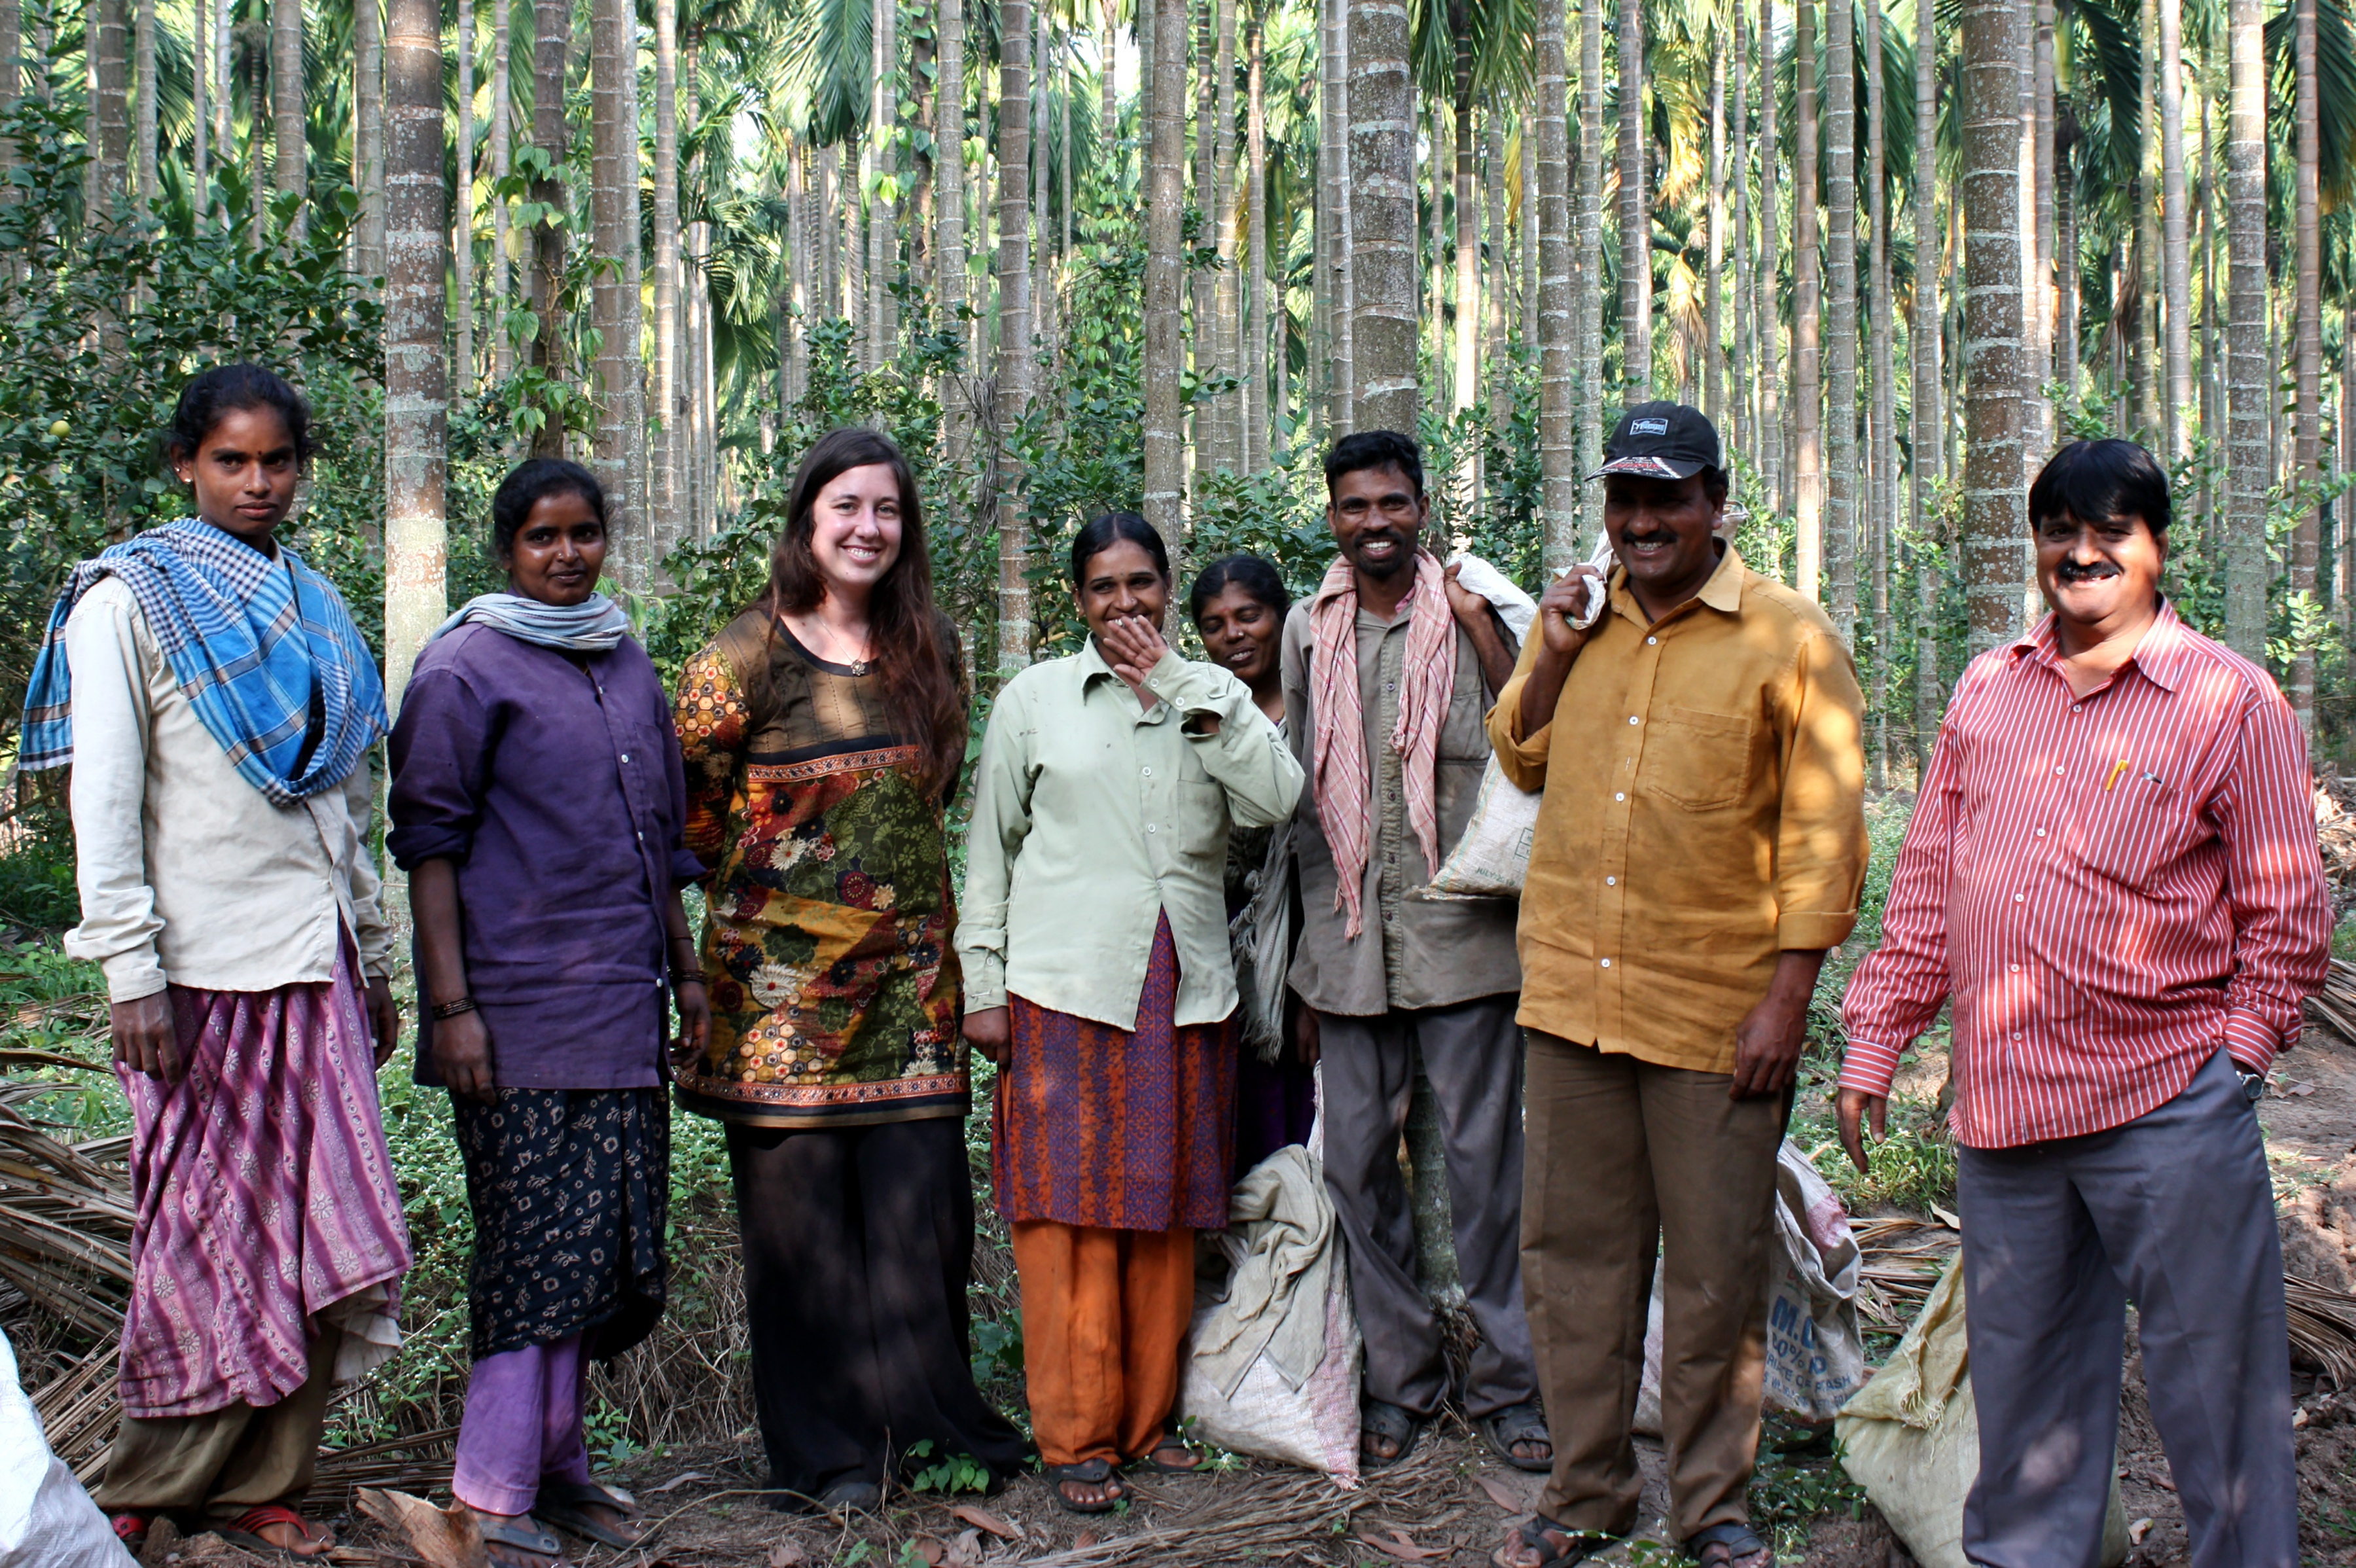 Group of people in forest located in India